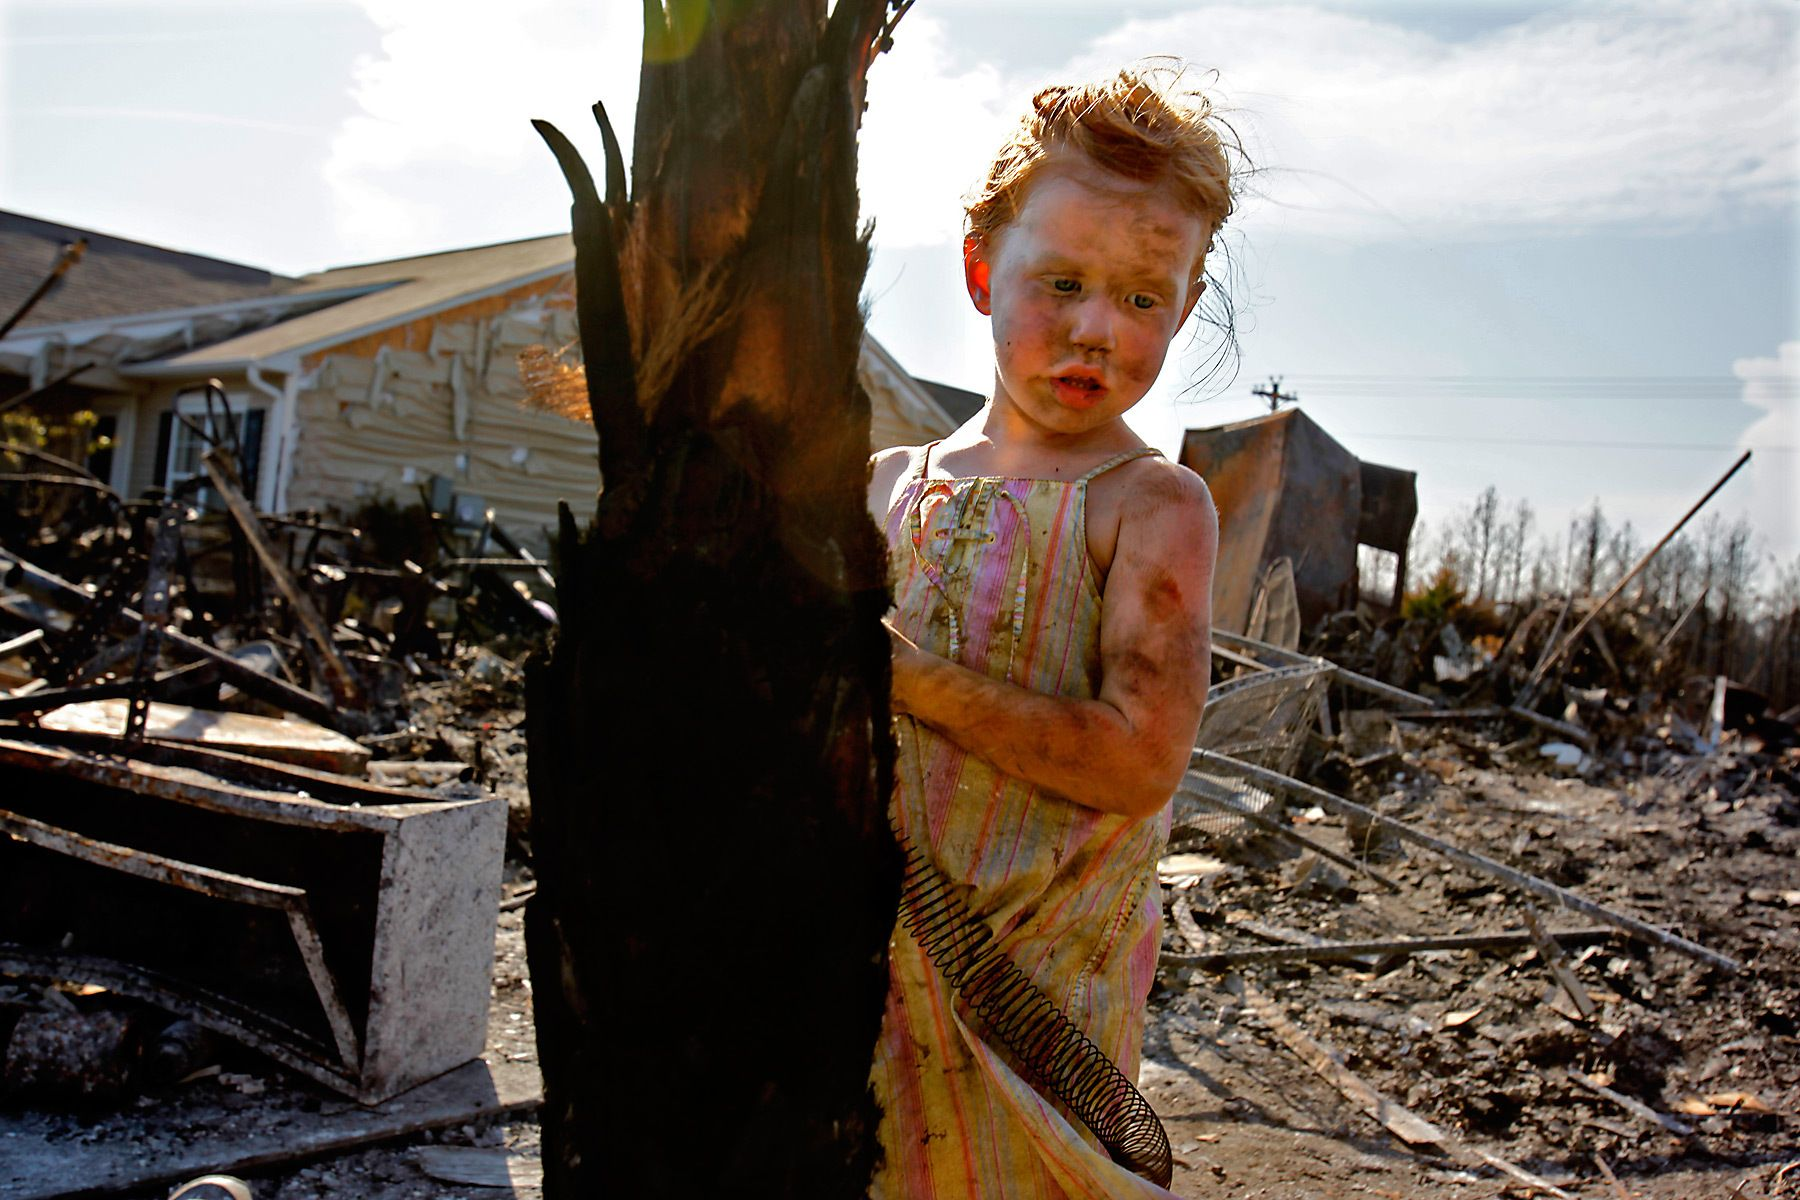 Covered in soot from helping with the search for keepsakes at her grandparent's burnt out house on Swift Street in Barefoot Resort, Elli Boos, 4, plays with a bedspring on Friday used as a toy. With her parents Derek and Penny Boos and other siblings, the grandchildren of Bob and Jo Ann Portteus played an important role in helping with the search for usable personal items. Residents living in the fire affected areas were allowed back to their homes today to check on the status of their homes. The Portteus home was one of several  completely damaged on Swift Street in the development. {quote}It's just good having a loving family,{quote} said Bob Portteus when asked how he felt about the damage to his home and watching his family helping with the search. {quote}Everything else can be replaced.{quote}